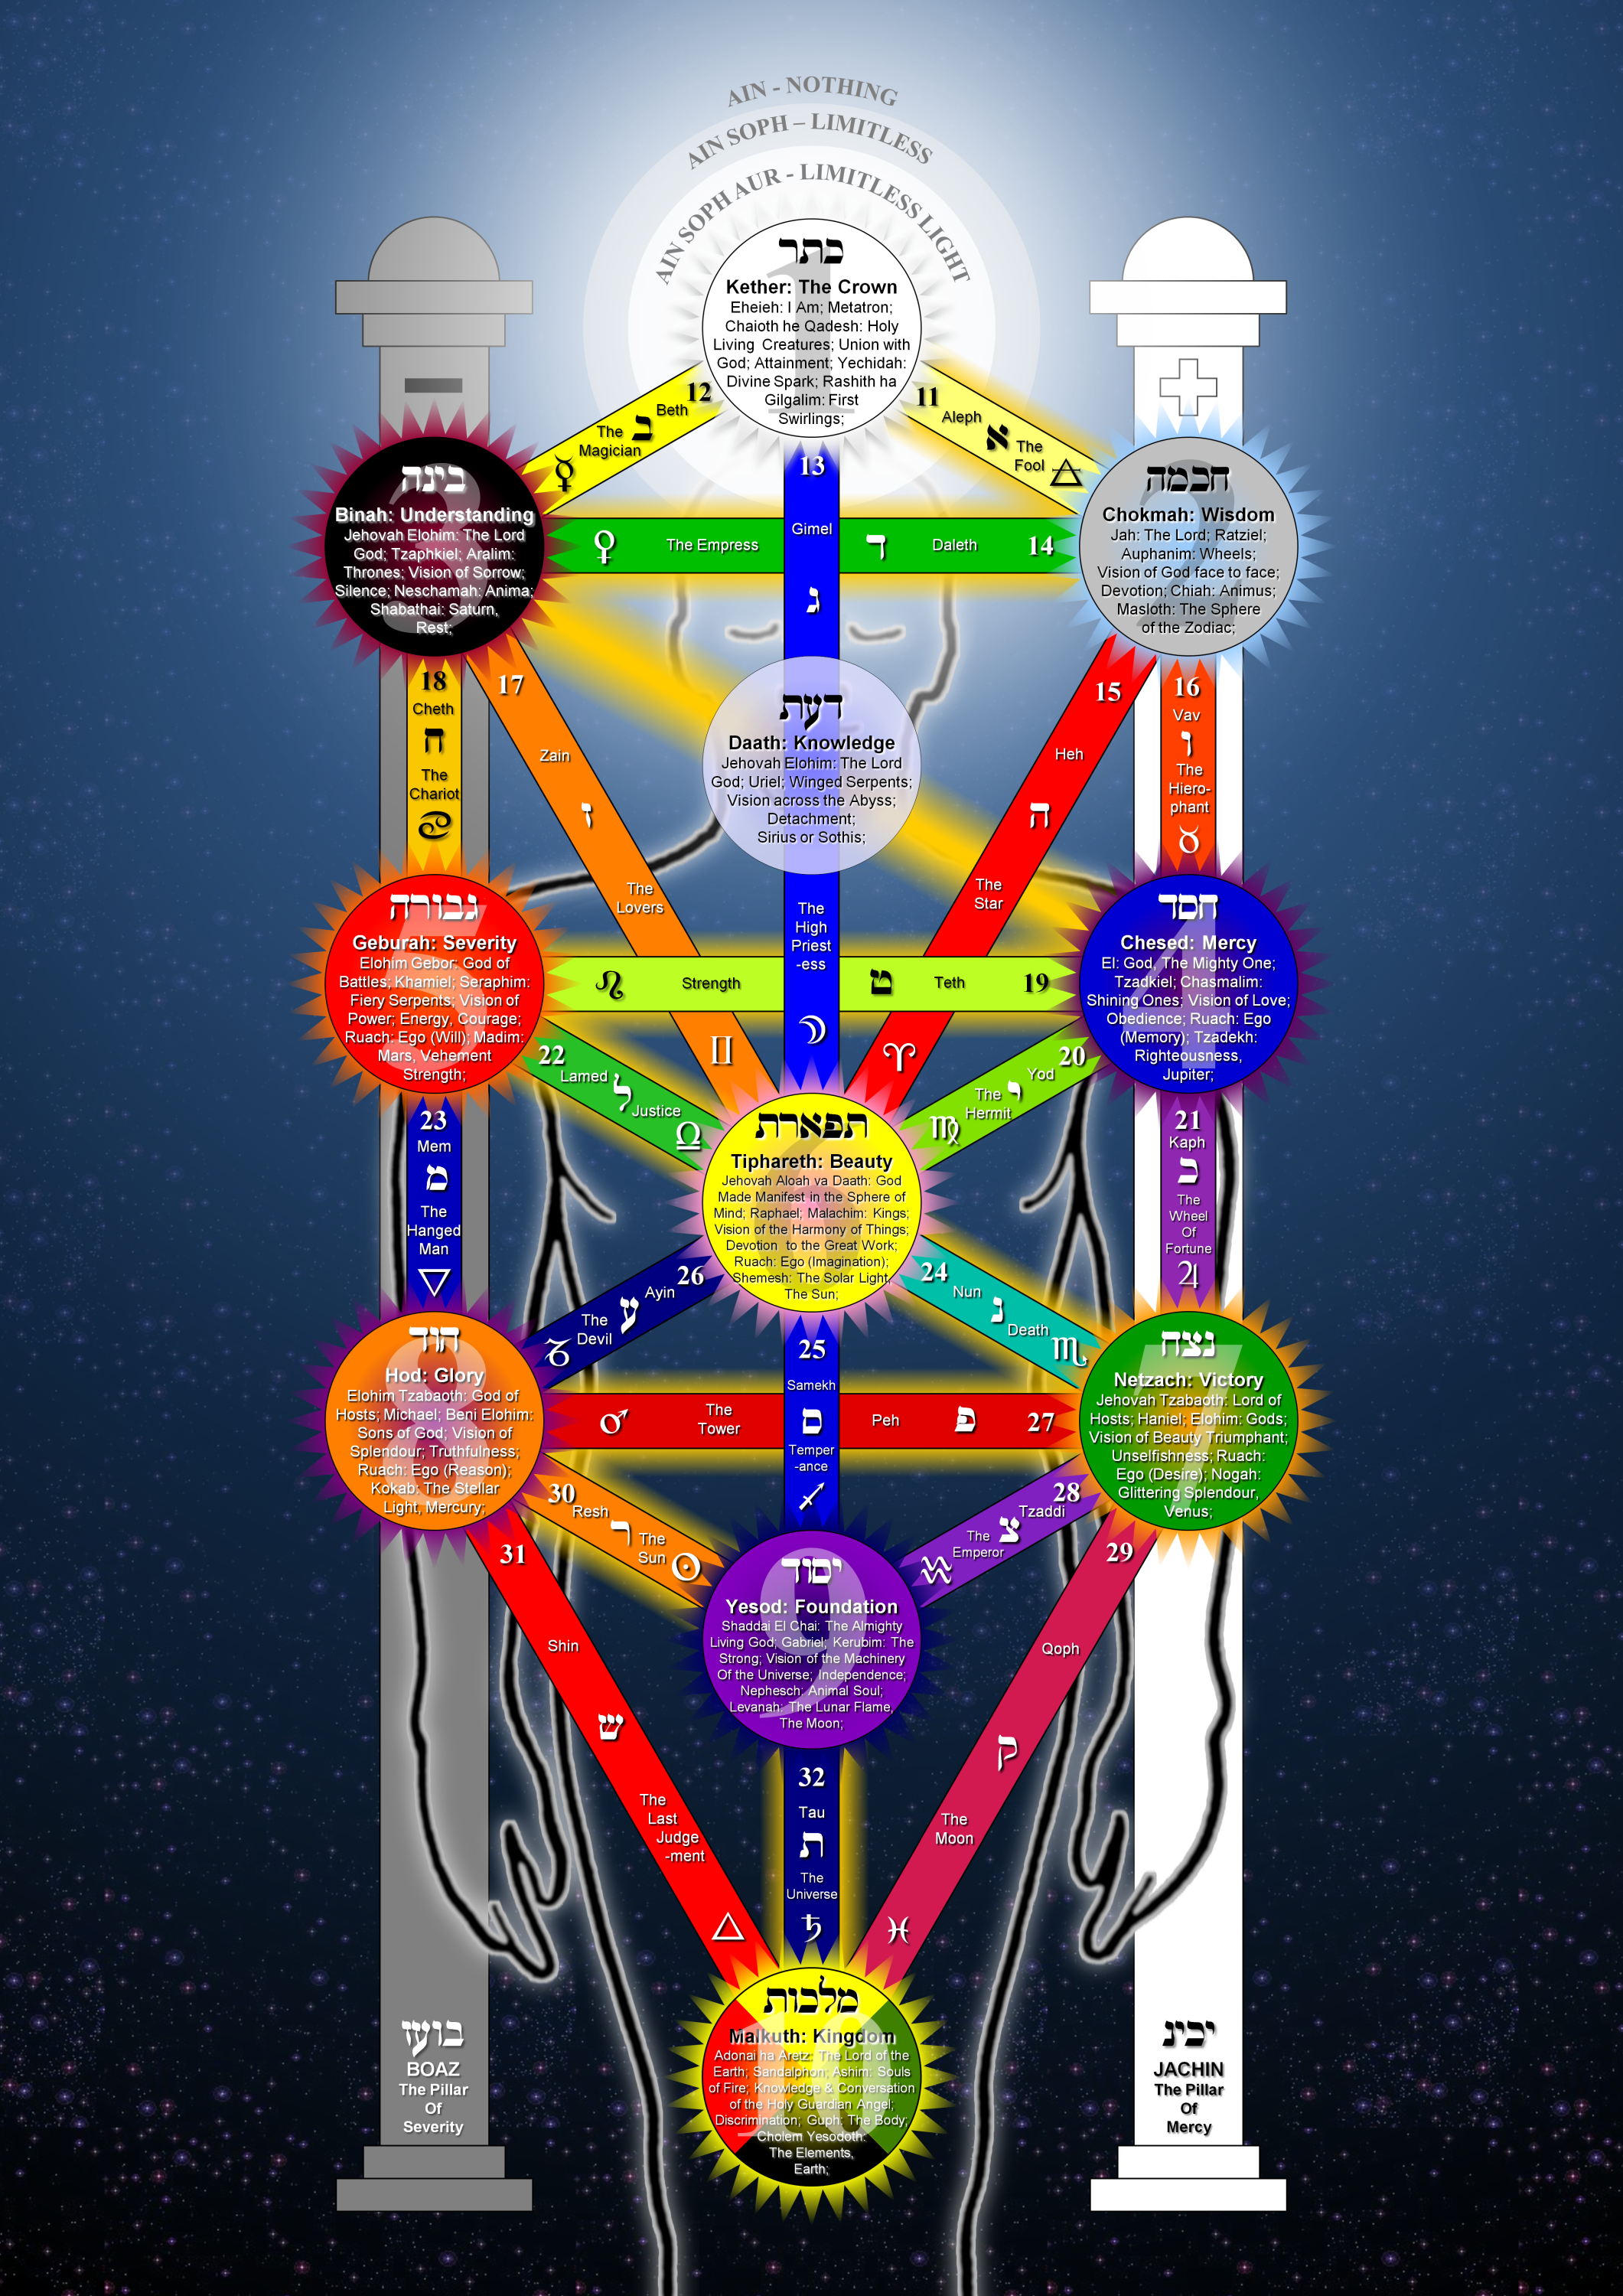 https://upload.wikimedia.org/wikipedia/commons/1/19/Tree_of_Life_2009_large.png